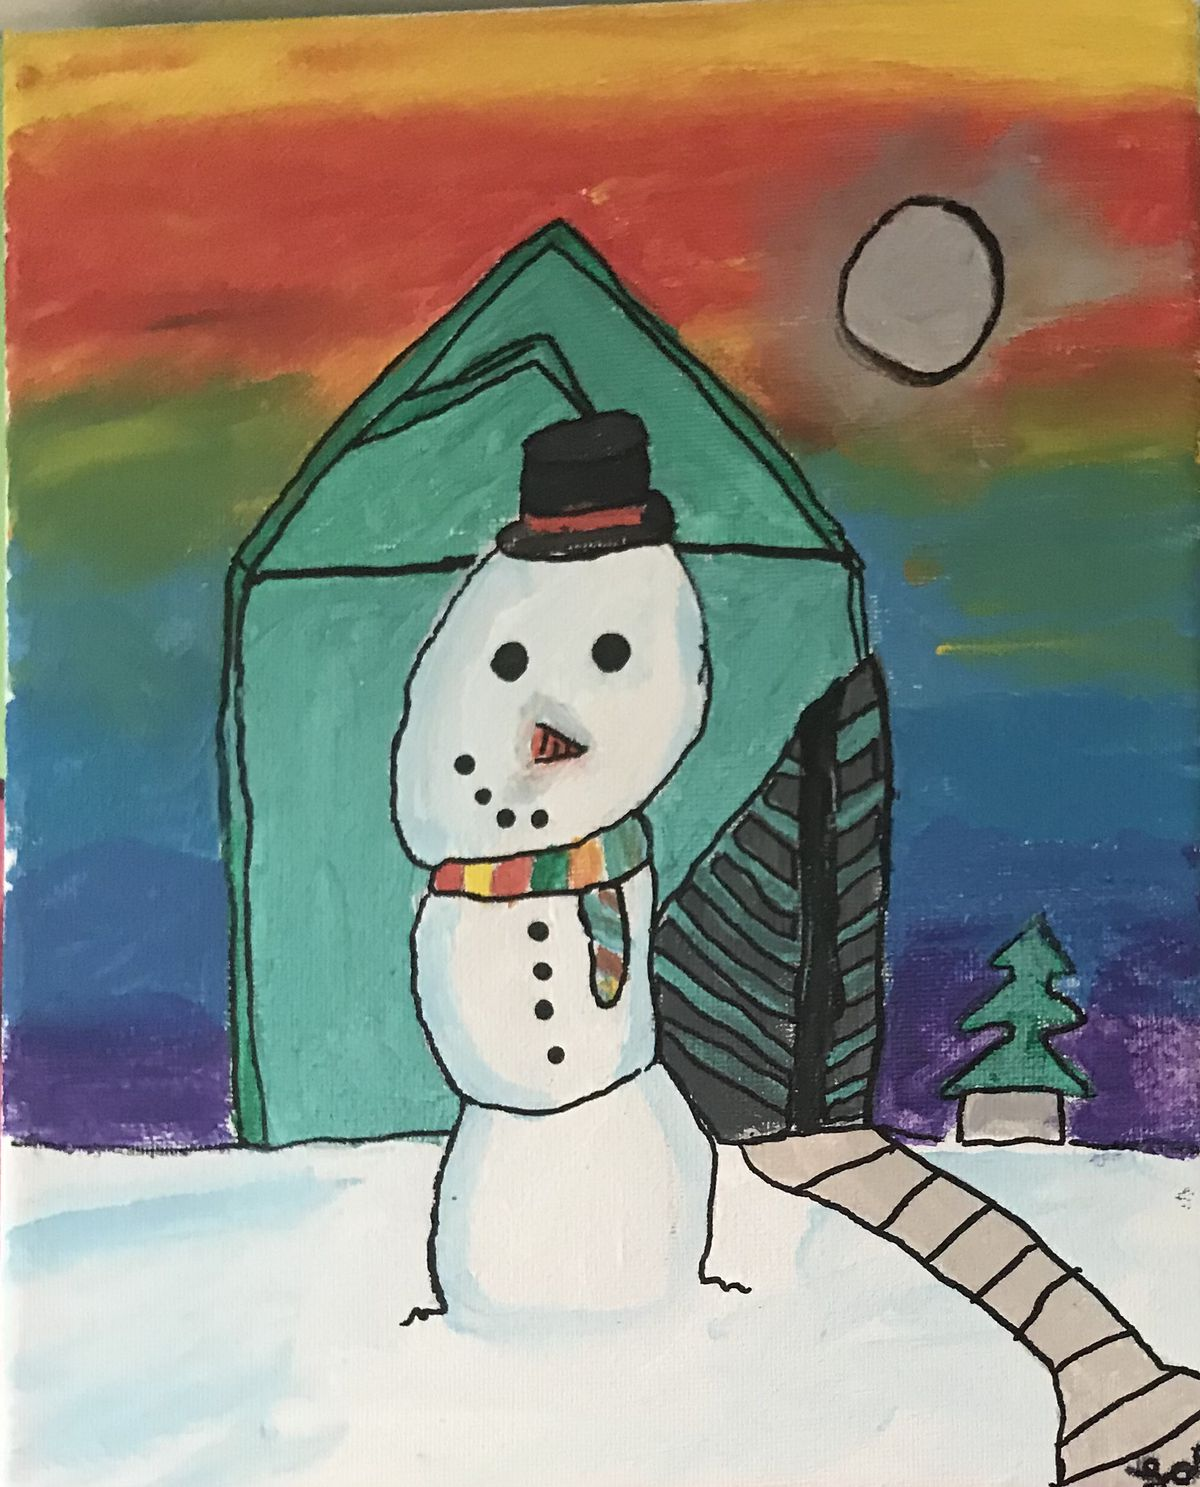 A snowman set against a backdrop of deep colors by Lara A., 12, a seventh-grader at Century Junior High School in Orland Park.